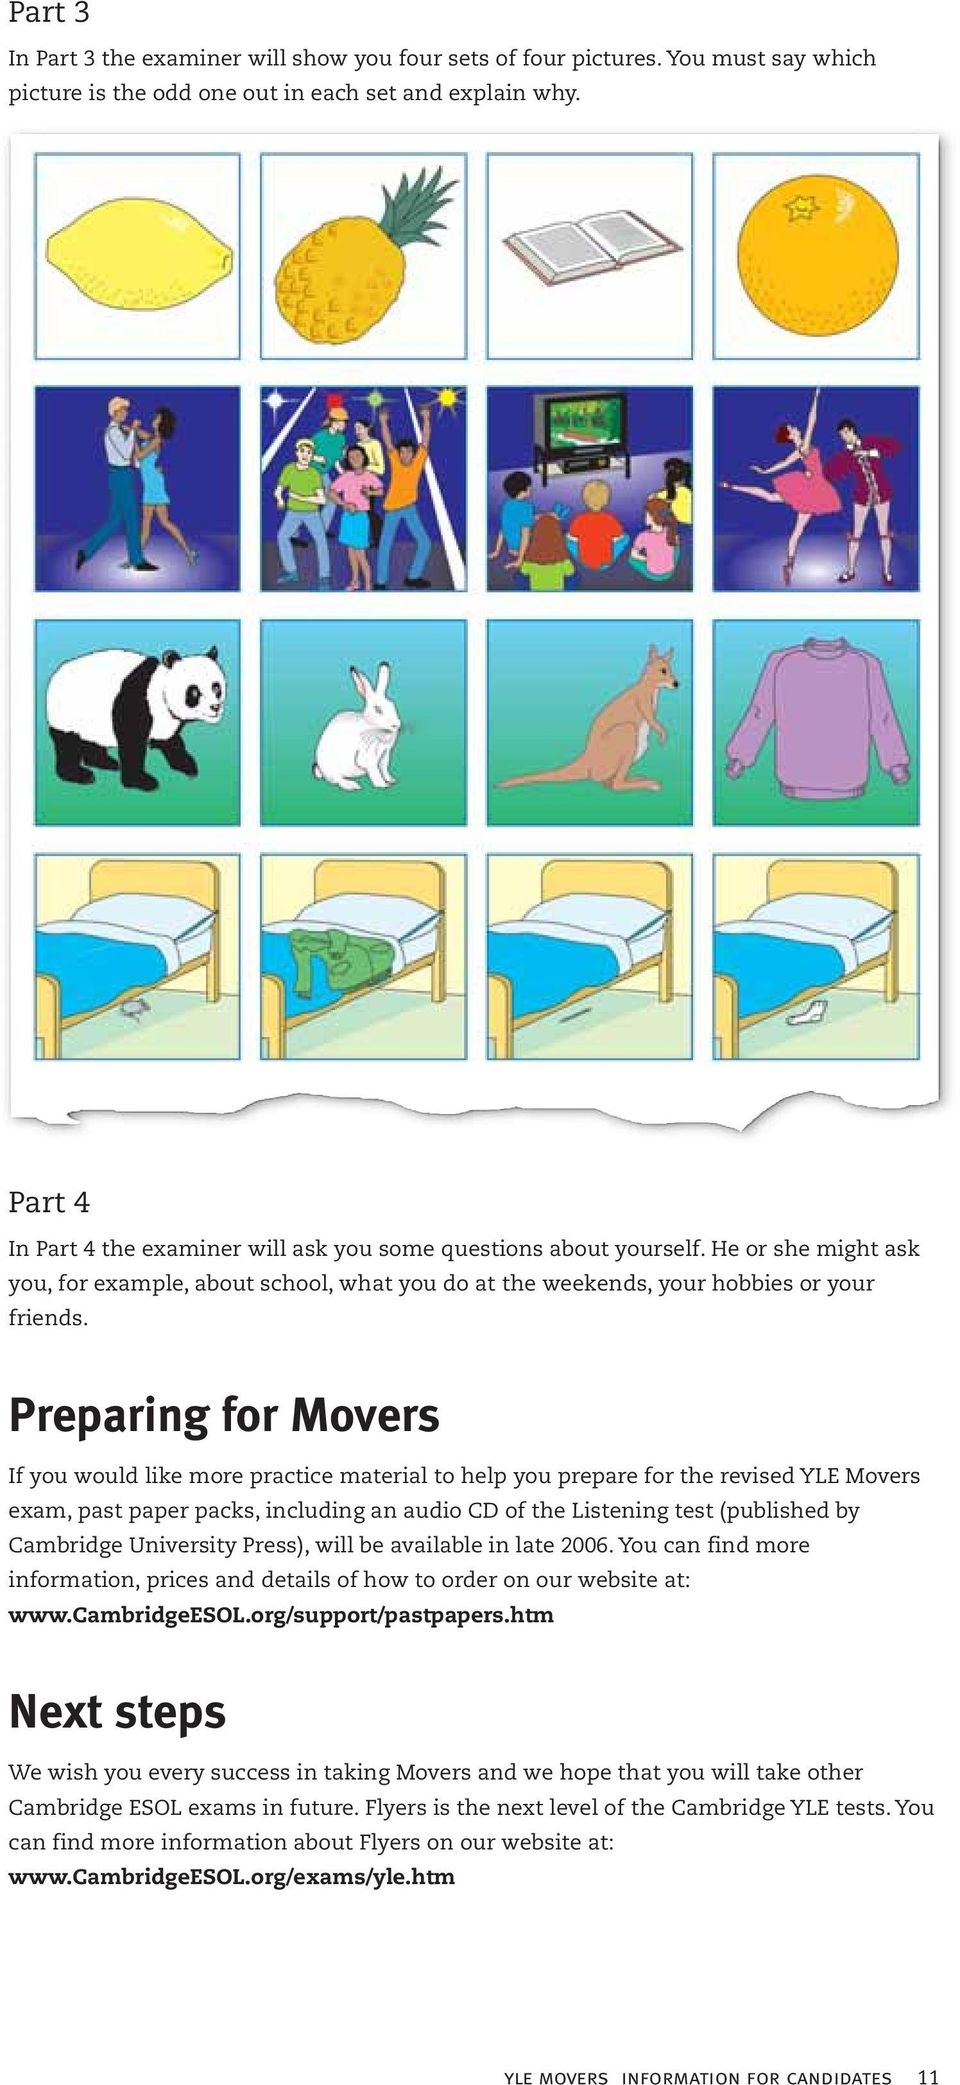 Preparing for Movers If you would like more practice material to help you prepare for the revised YLE Movers exam, past paper packs, including an audio CD of the Listening test (published by